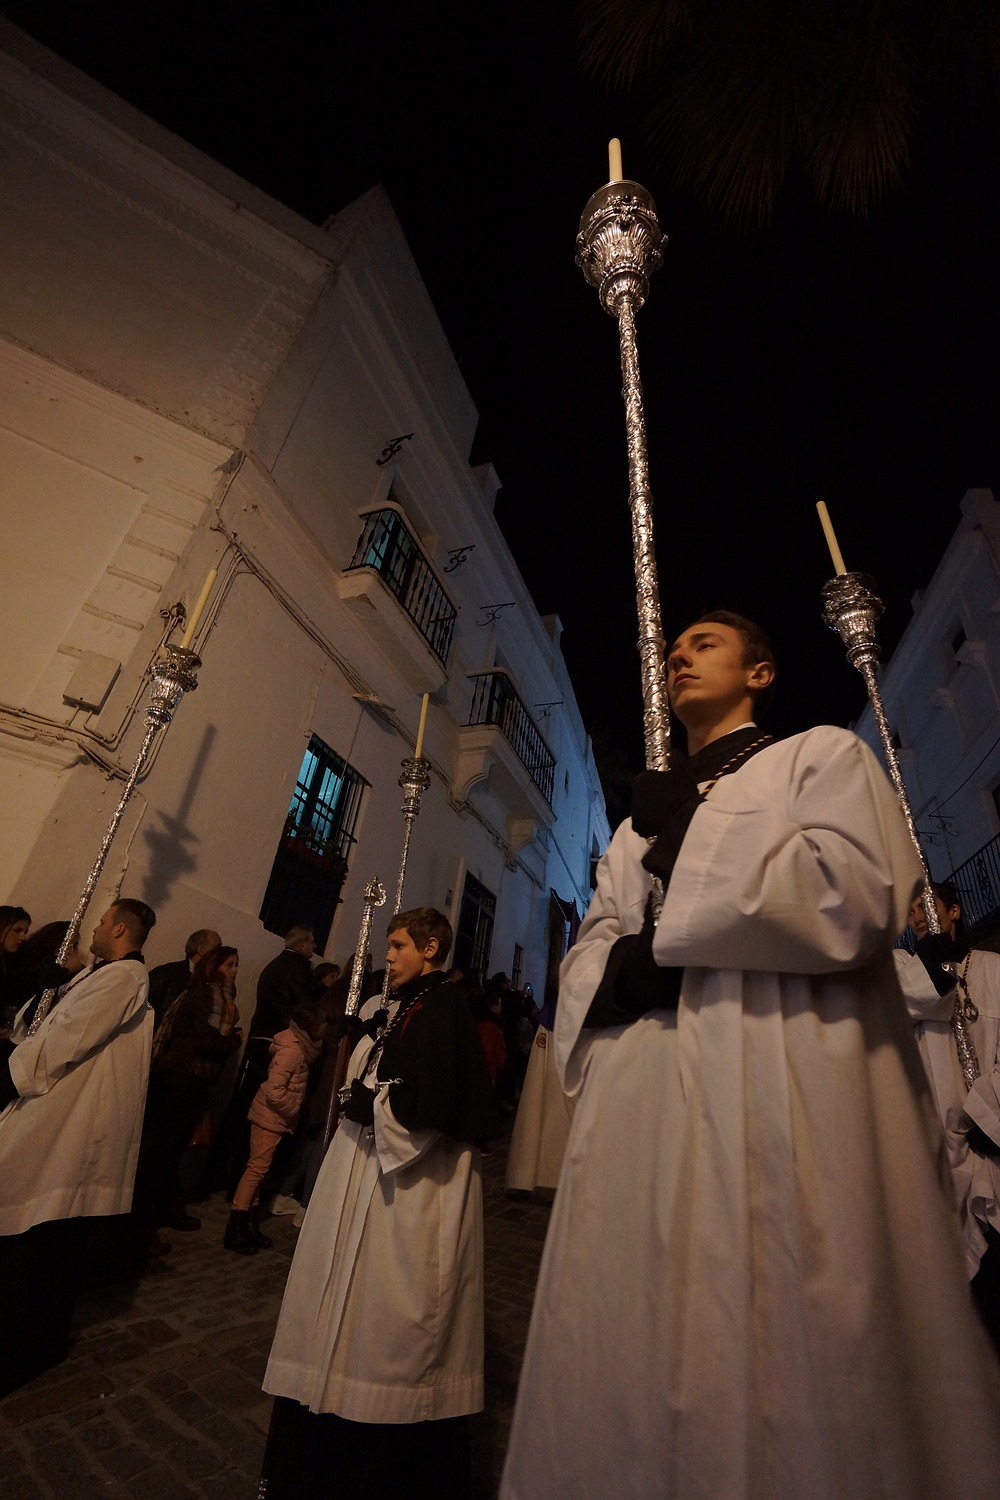 One of several Semana Santa processions - participants in white robes